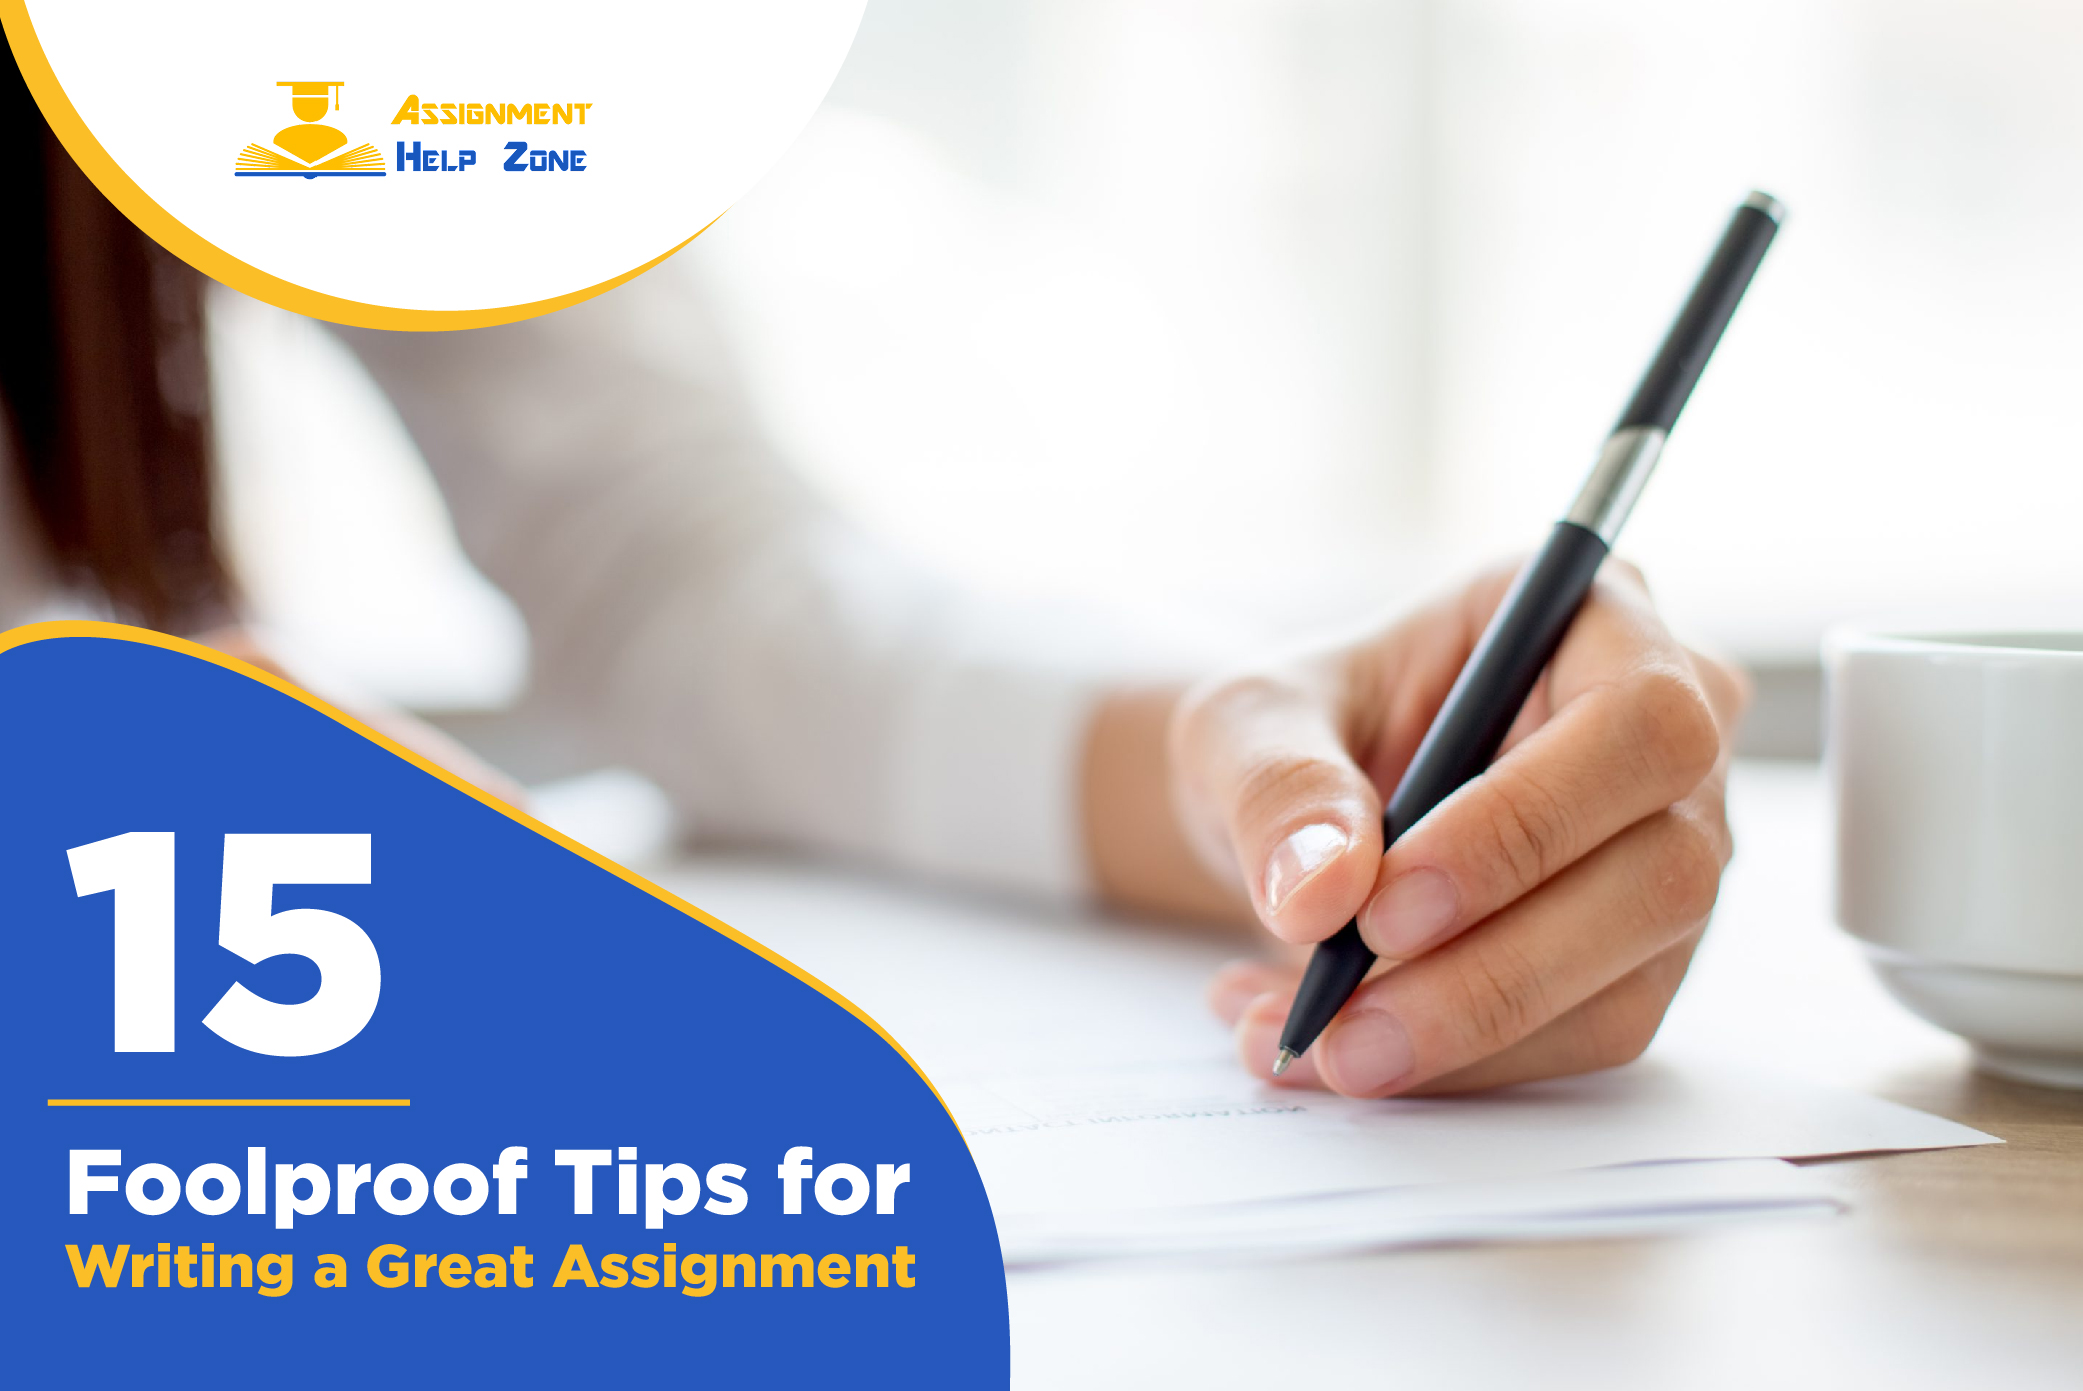 15 Foolproof Tips for Writing a Great Assignment